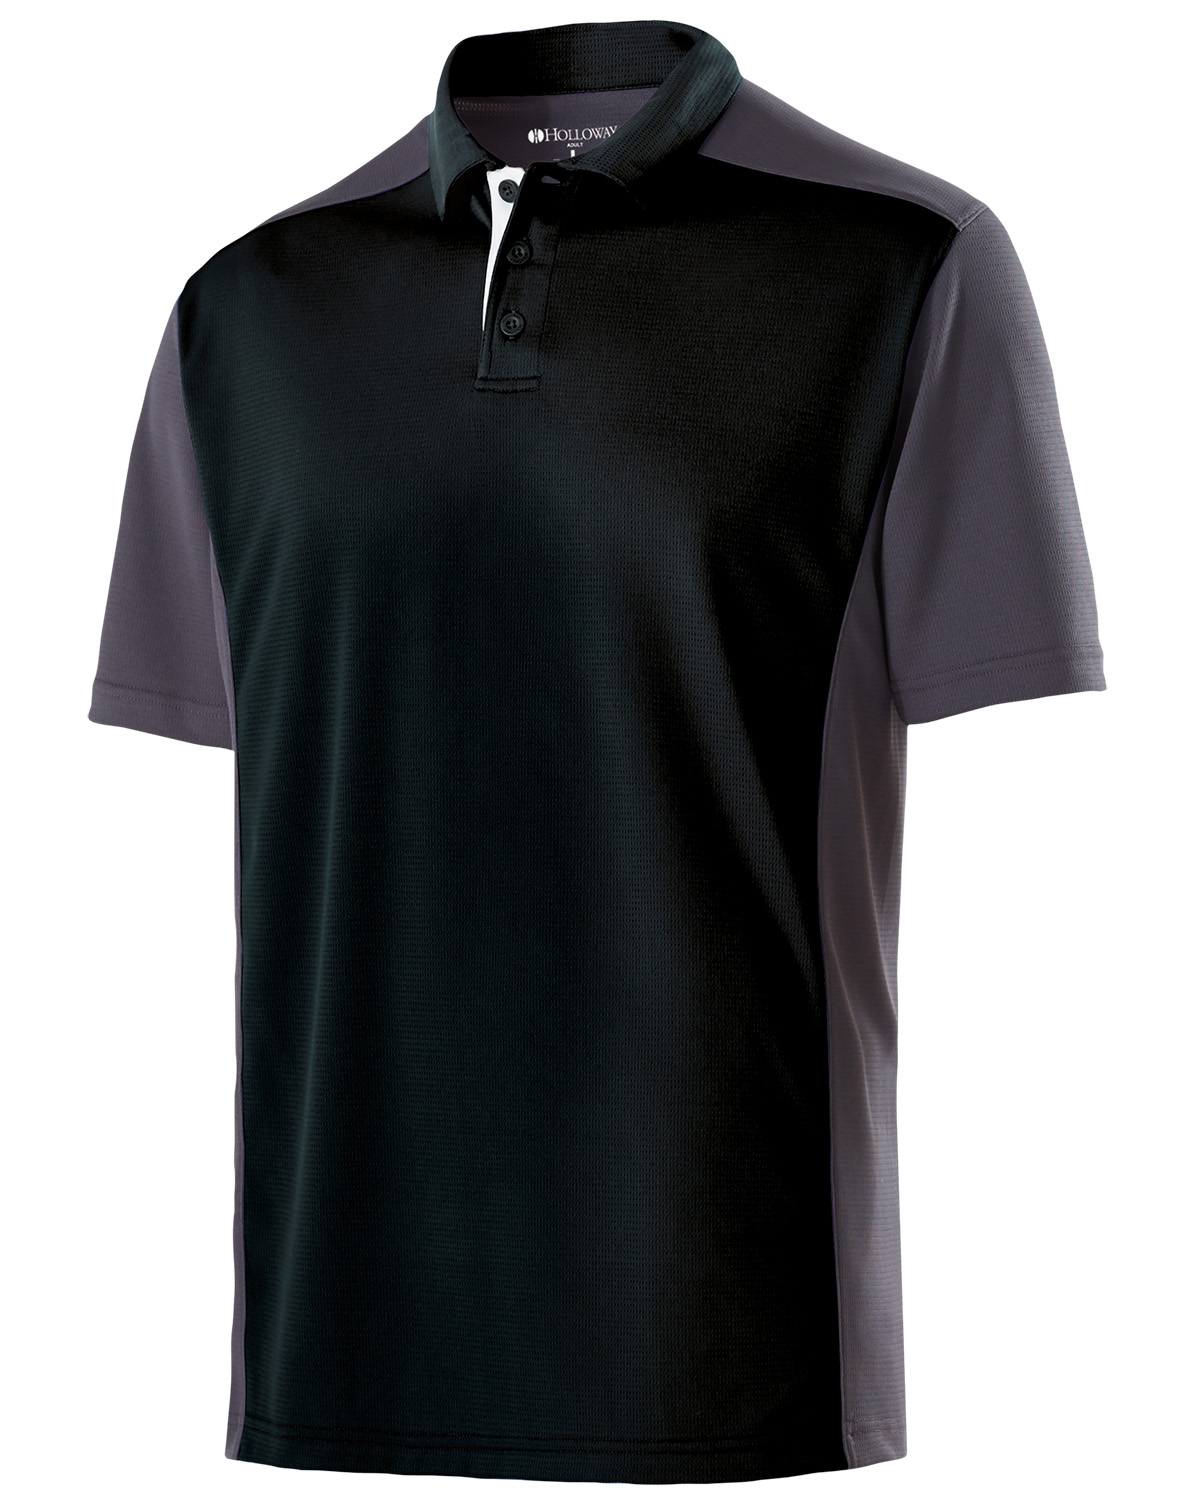 Holloway 222486 - Adult Polyester Closed-Hole Division Polo